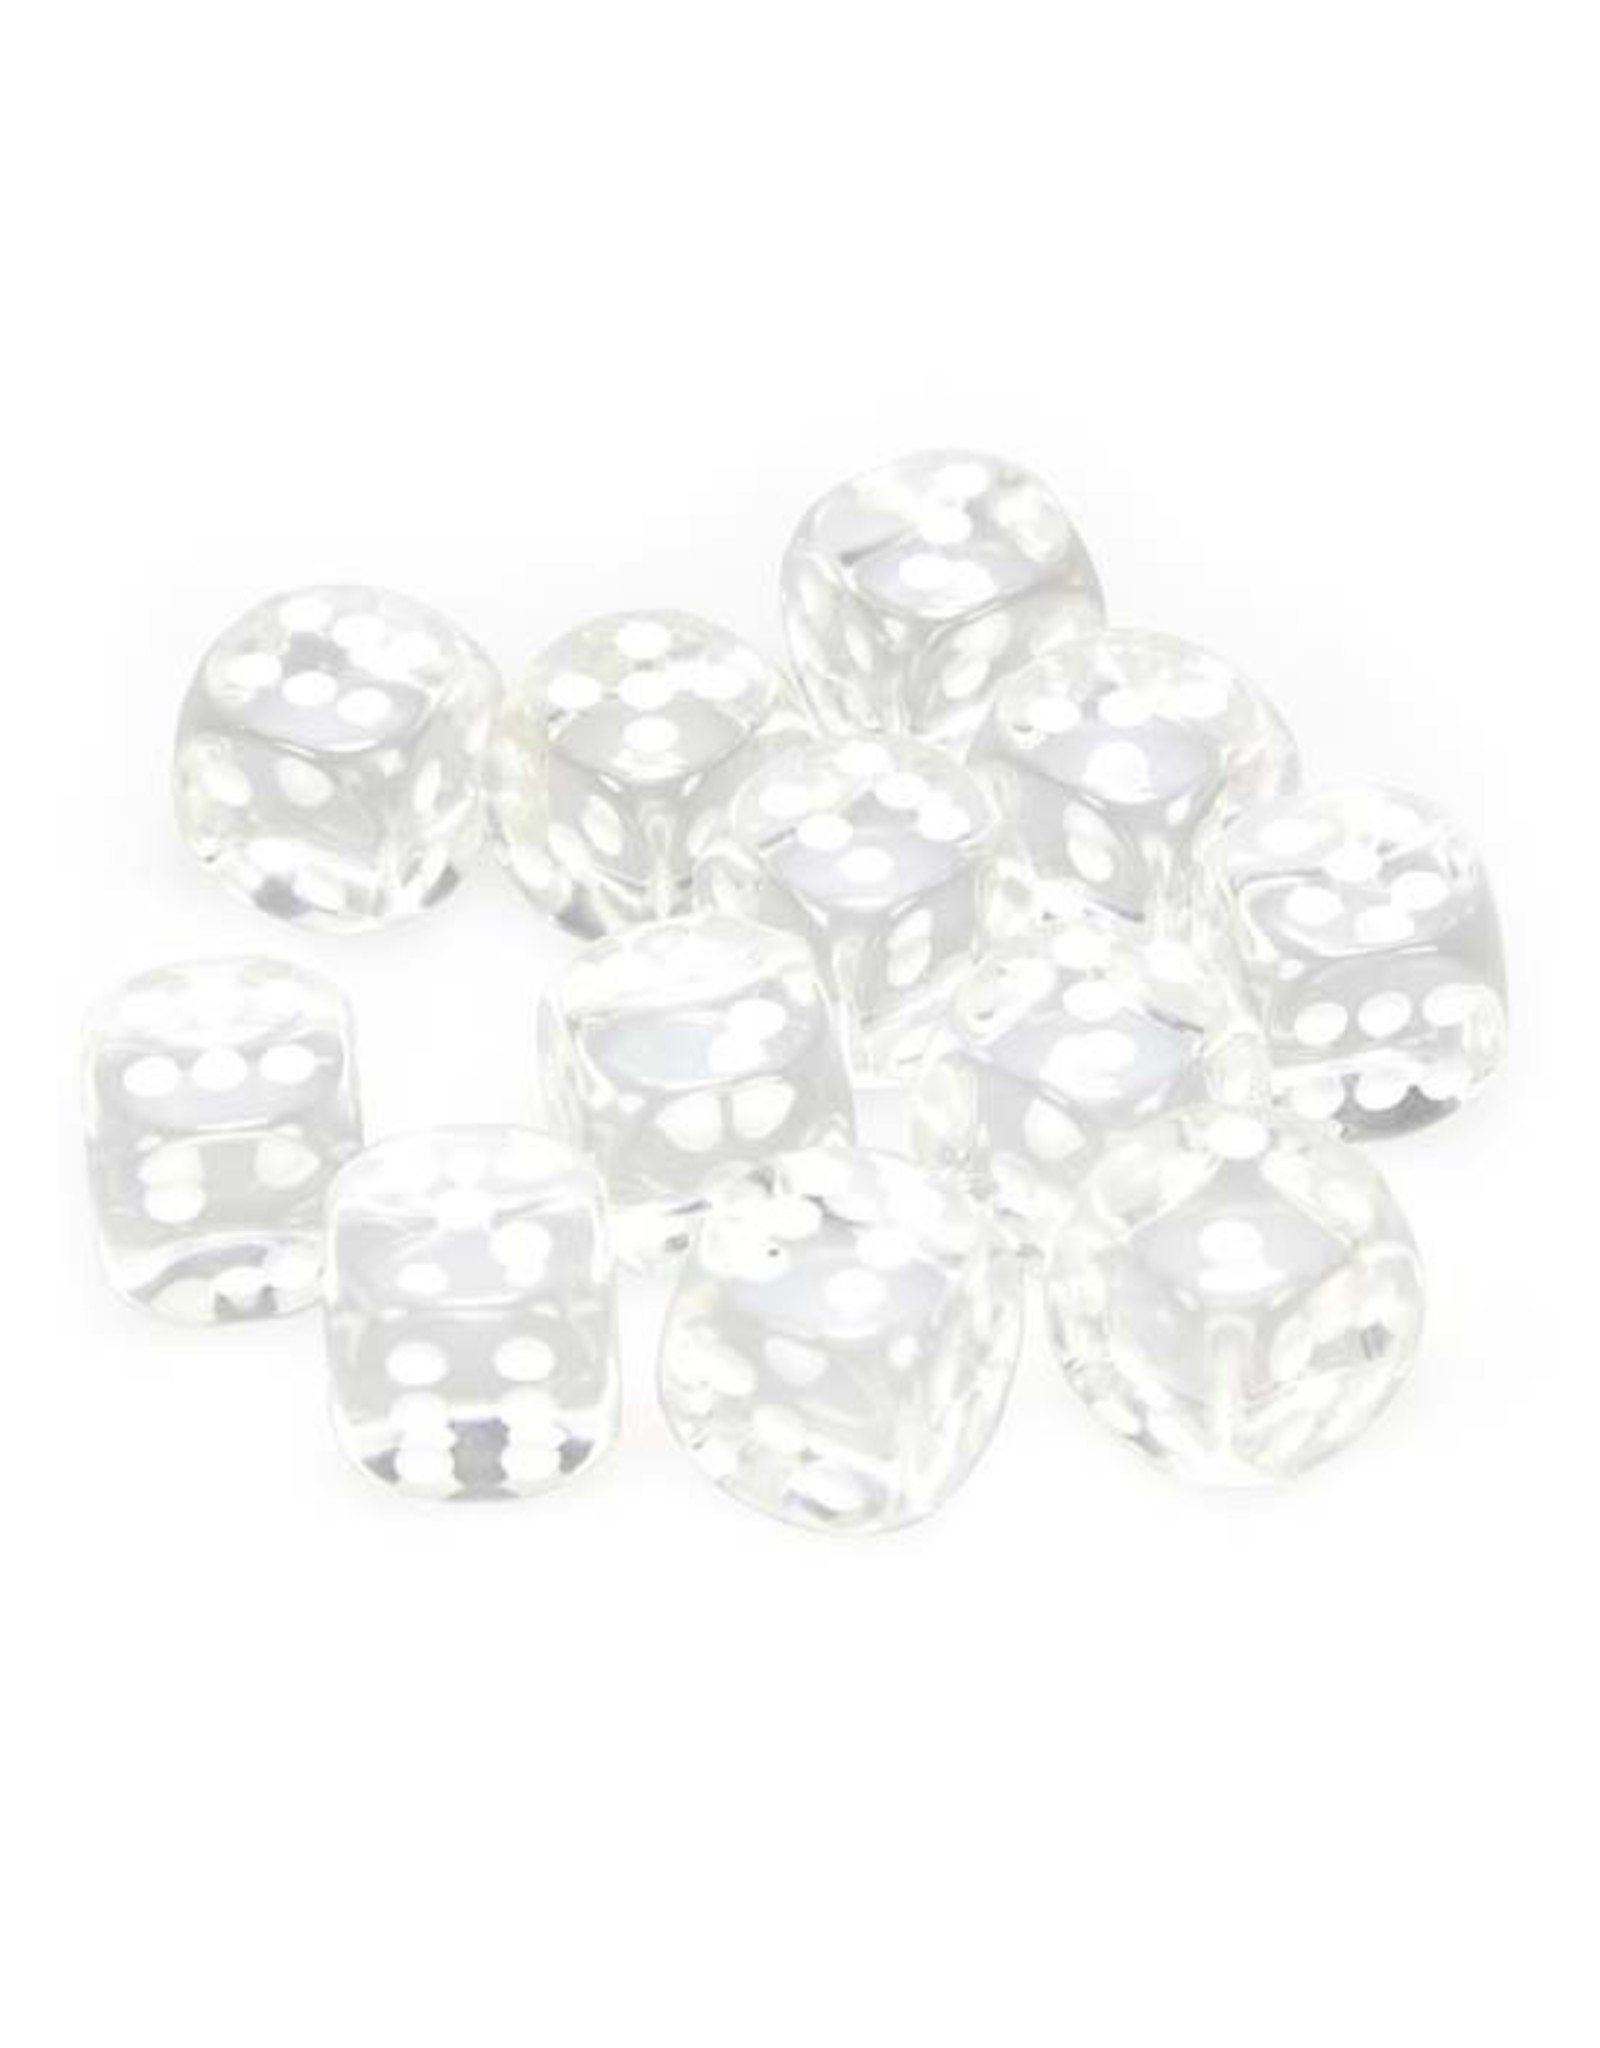 Chessex Chessex: 16mm D6 - Translucent - Clear w/ White